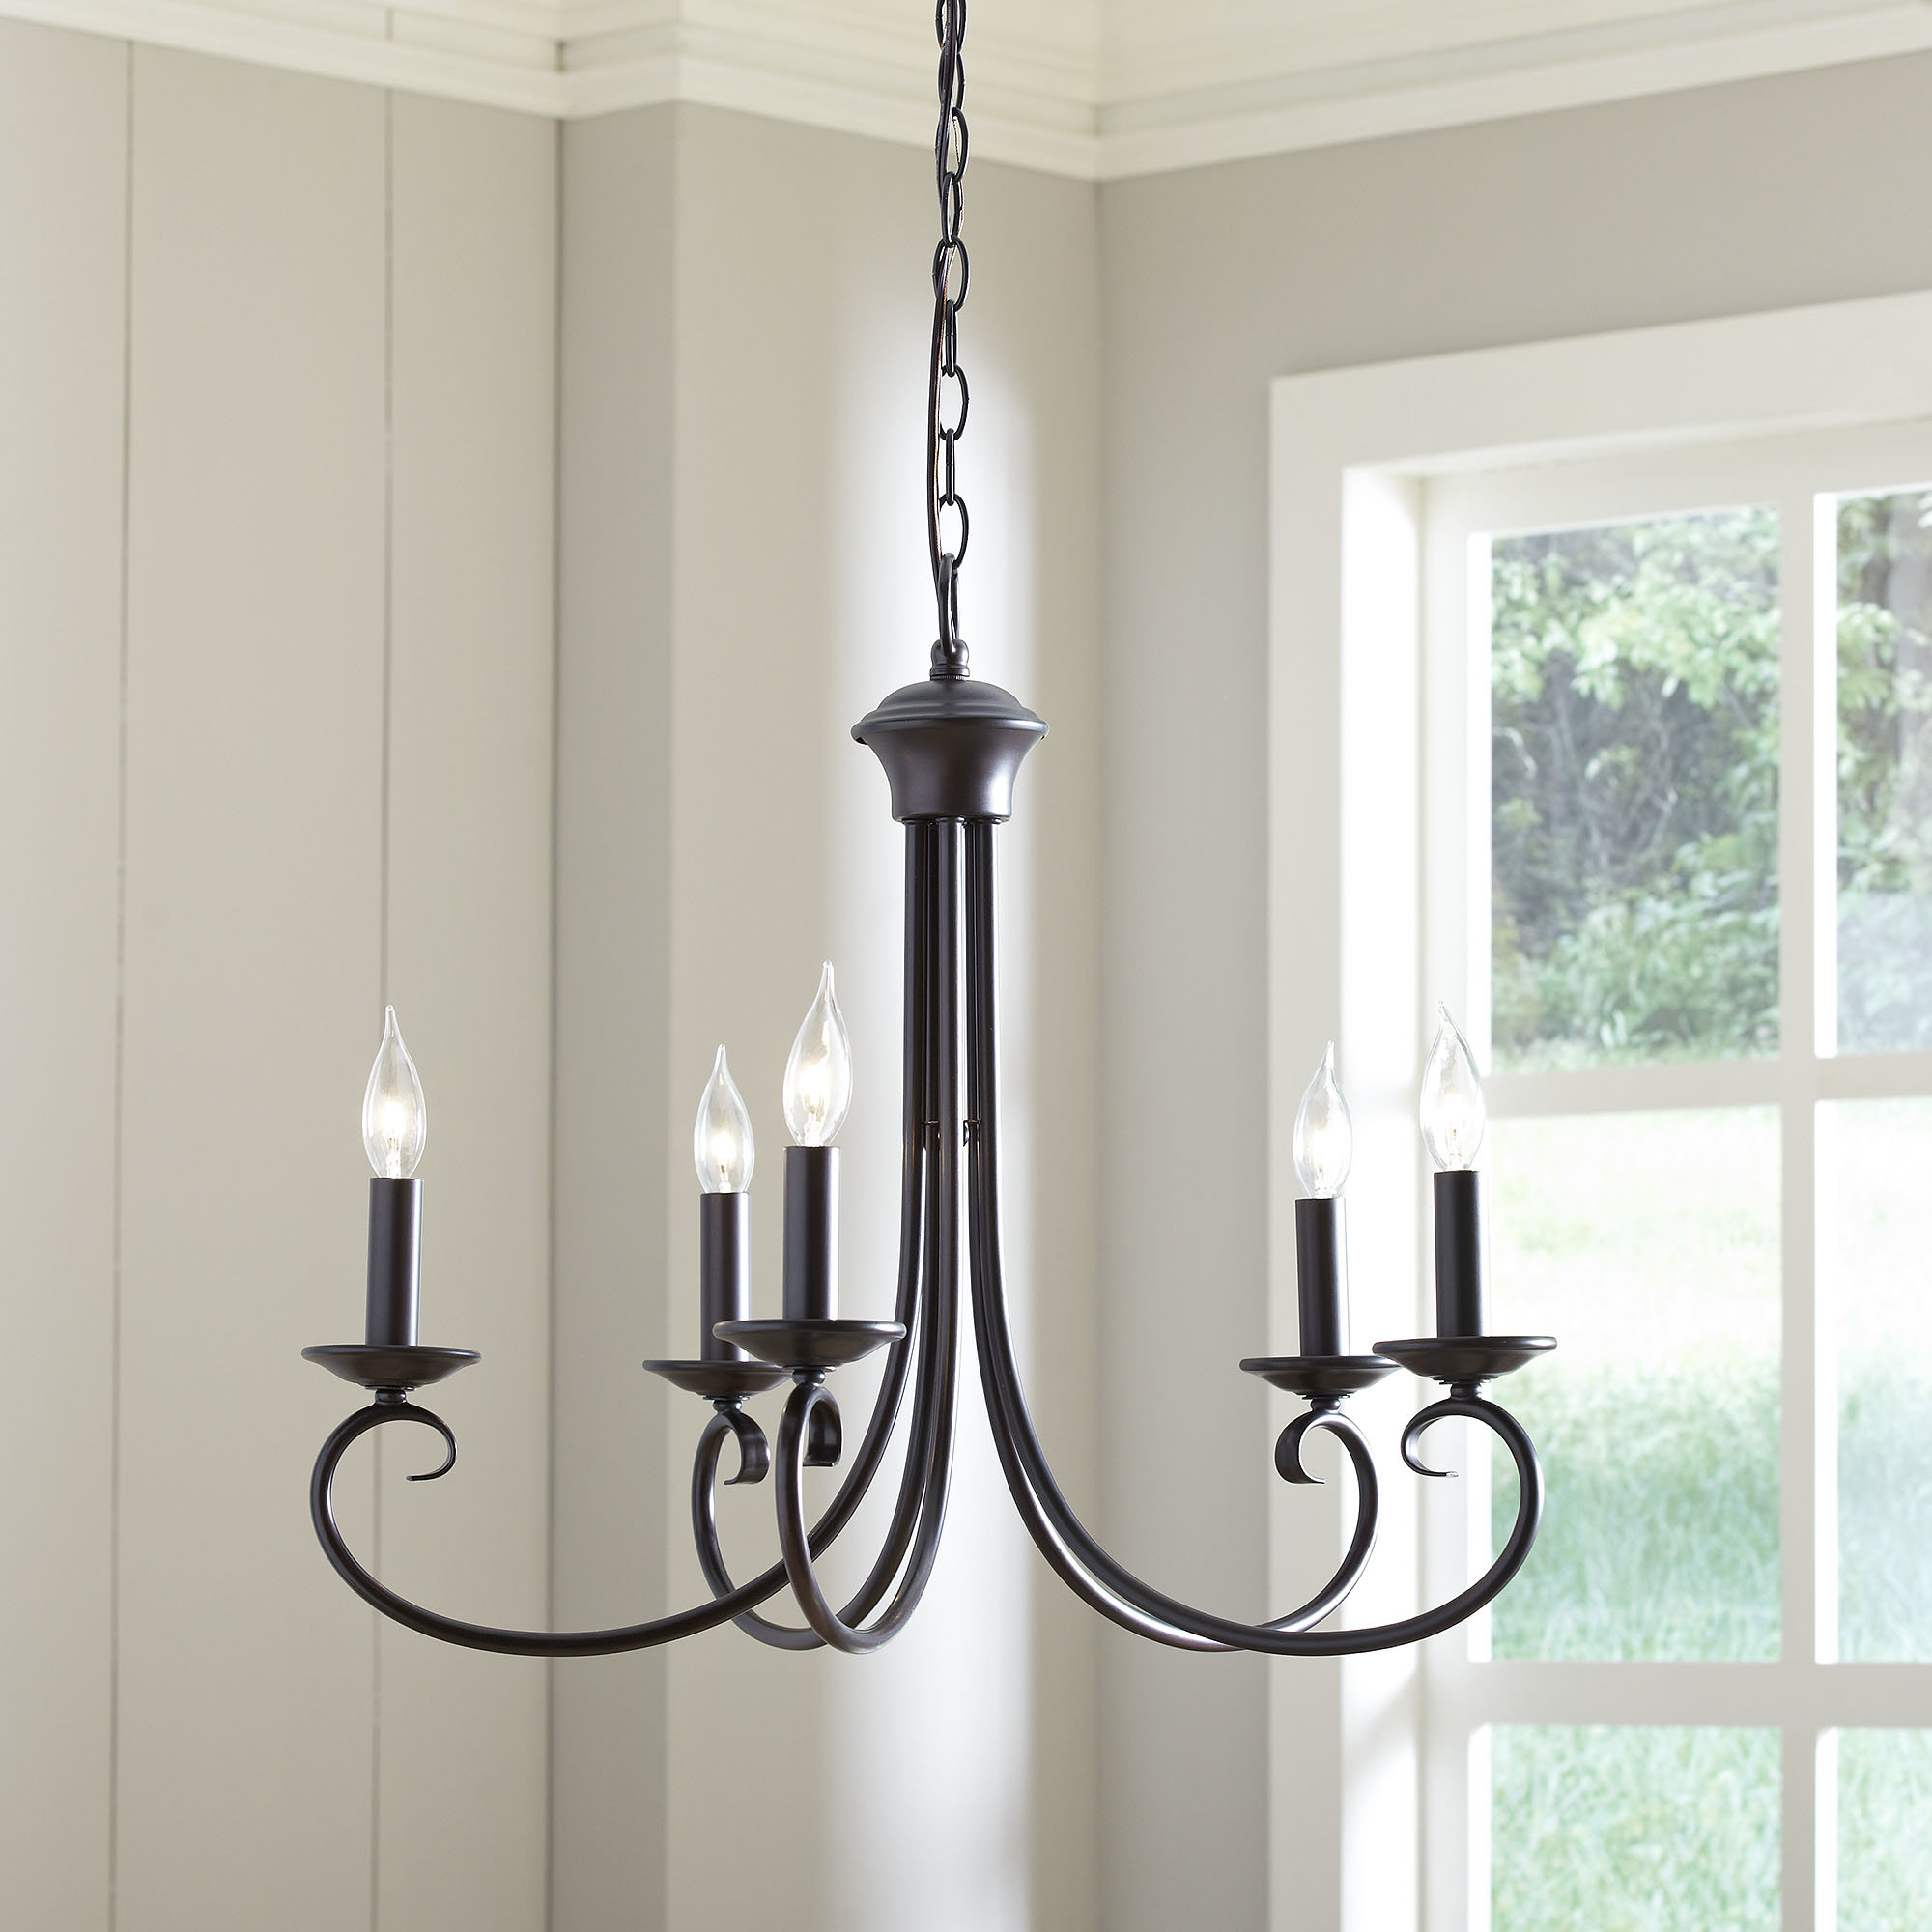 Widely Used Edgell 5 Light Candle Style Chandelier For Shaylee 5 Light Candle Style Chandeliers (View 25 of 25)